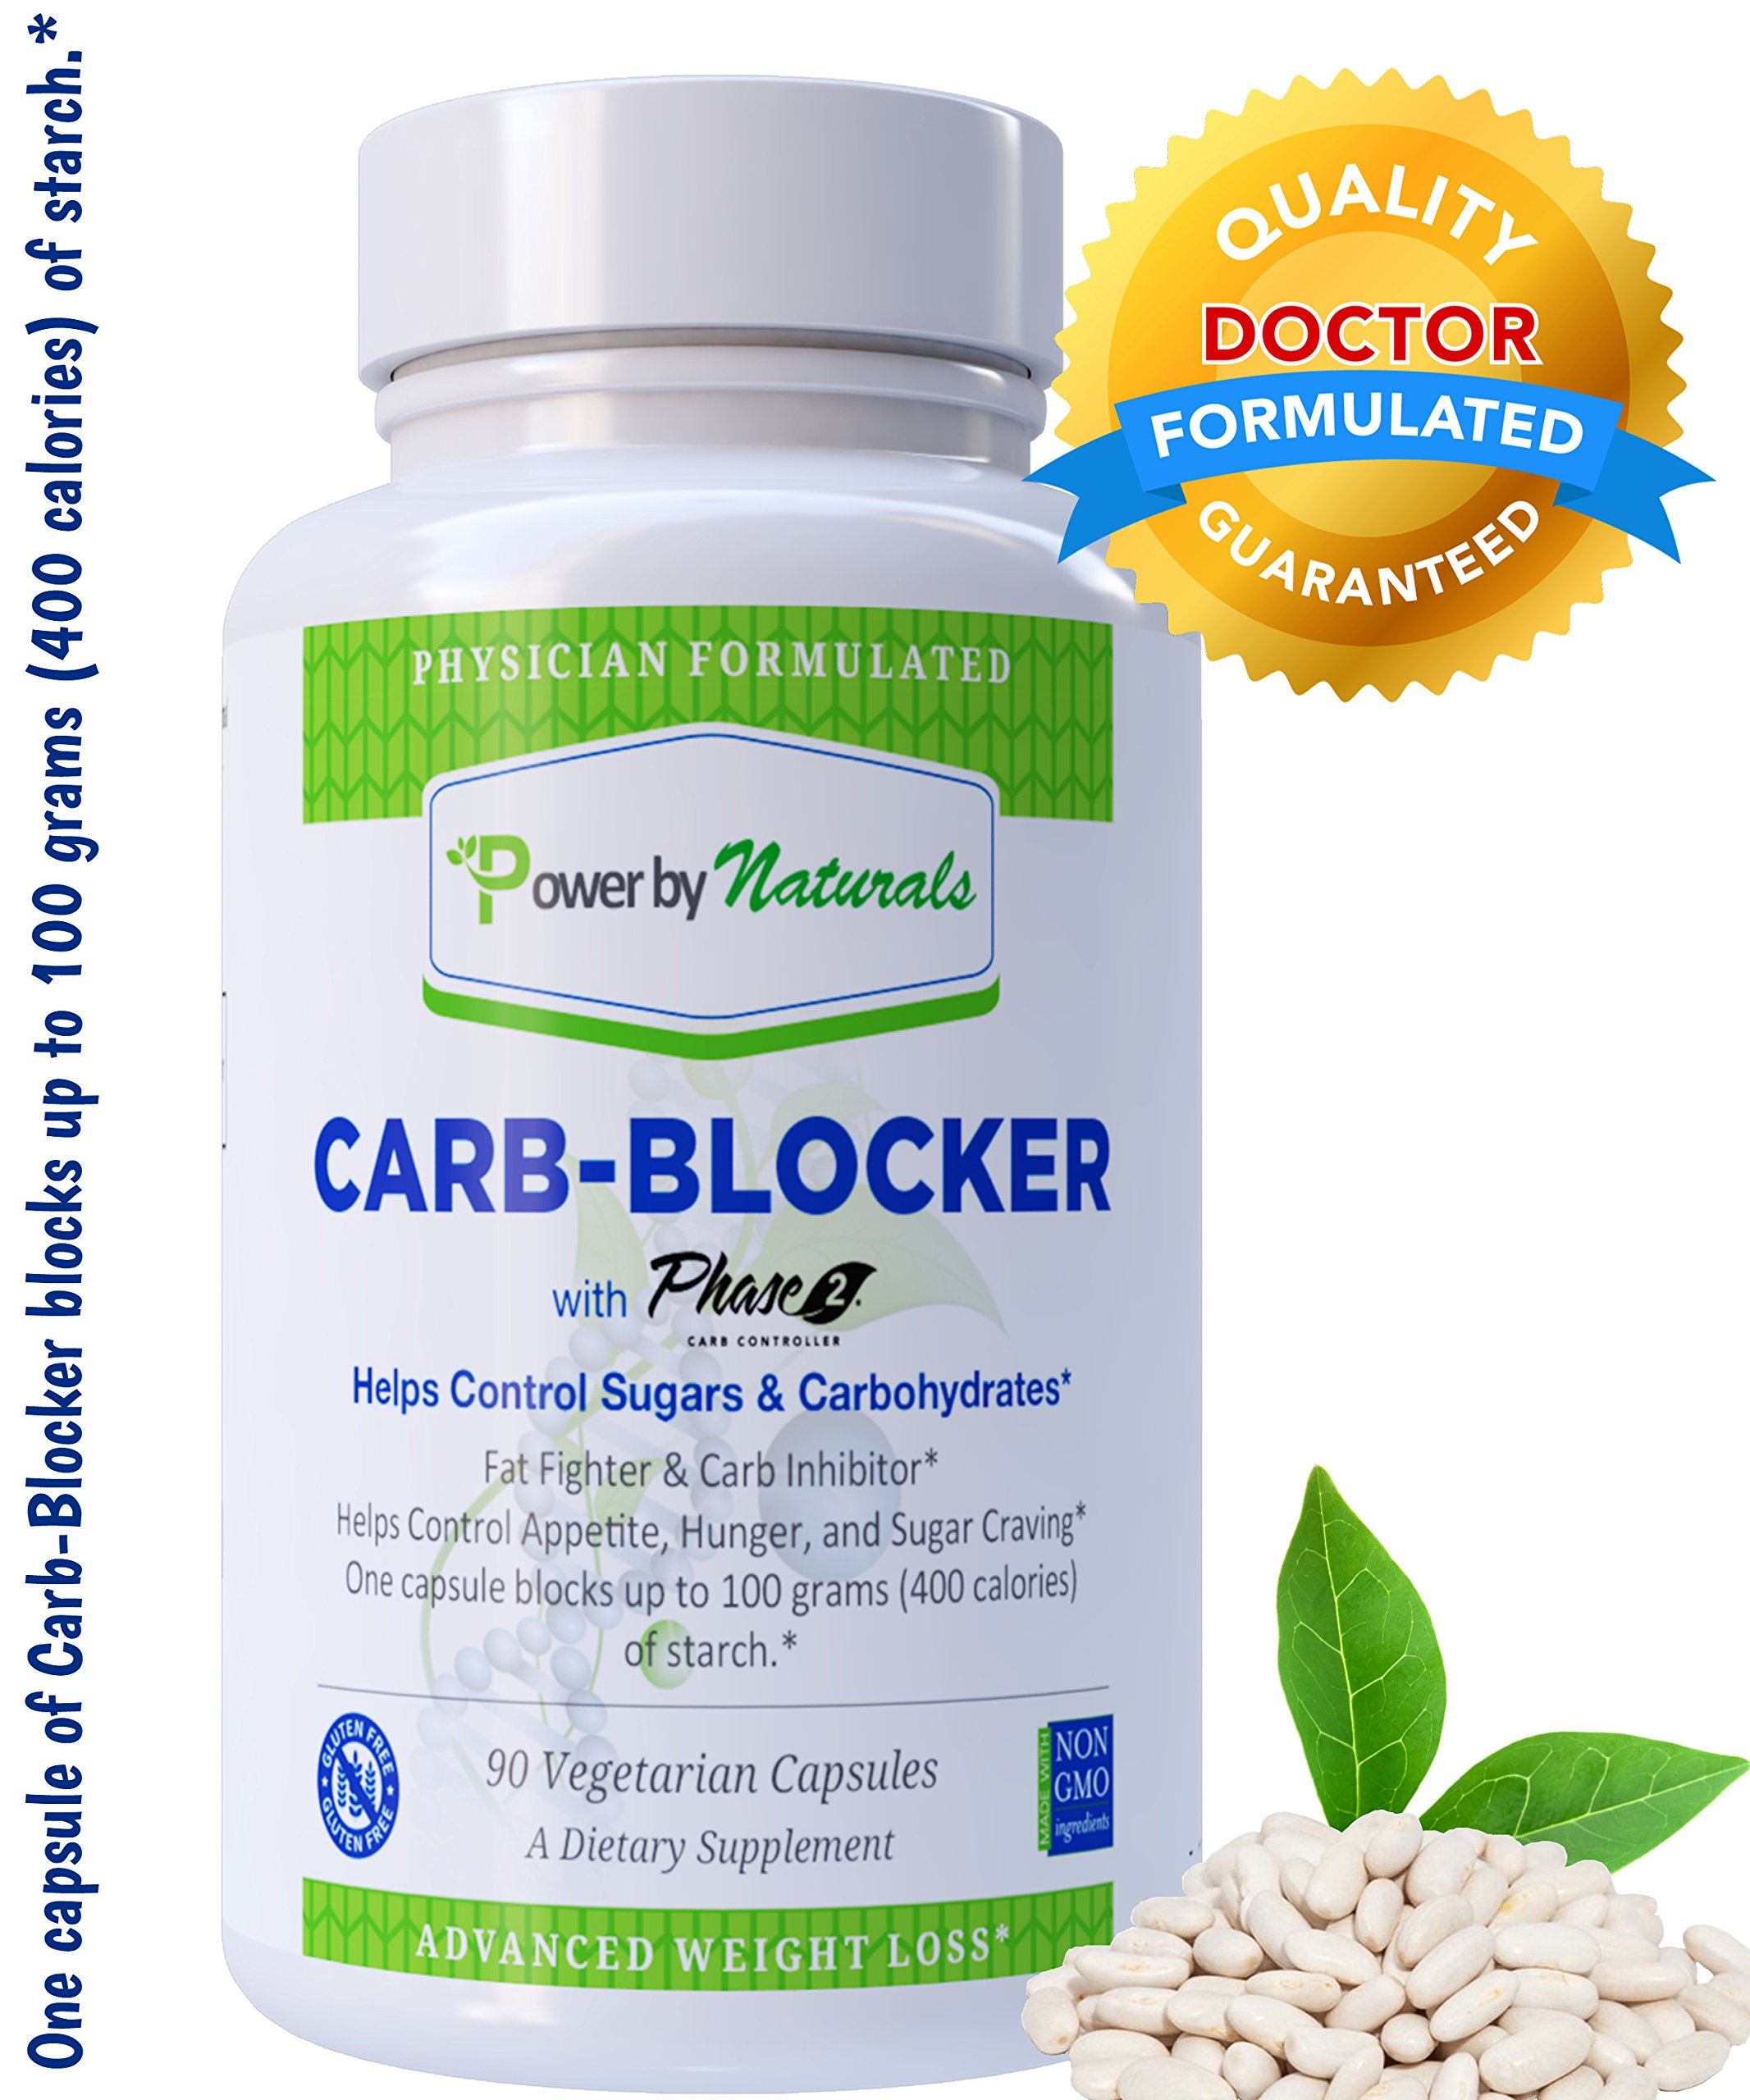 PbyN- Dr. Formulated Carb Blocker with Phase 2 Carb Controller (Chromium, White Kidney Bean Extract, Gymnema) for Healthy Weight Loss, Fat Fighter, Block Carbohydrates, Appetite Suppressant - 90 ct